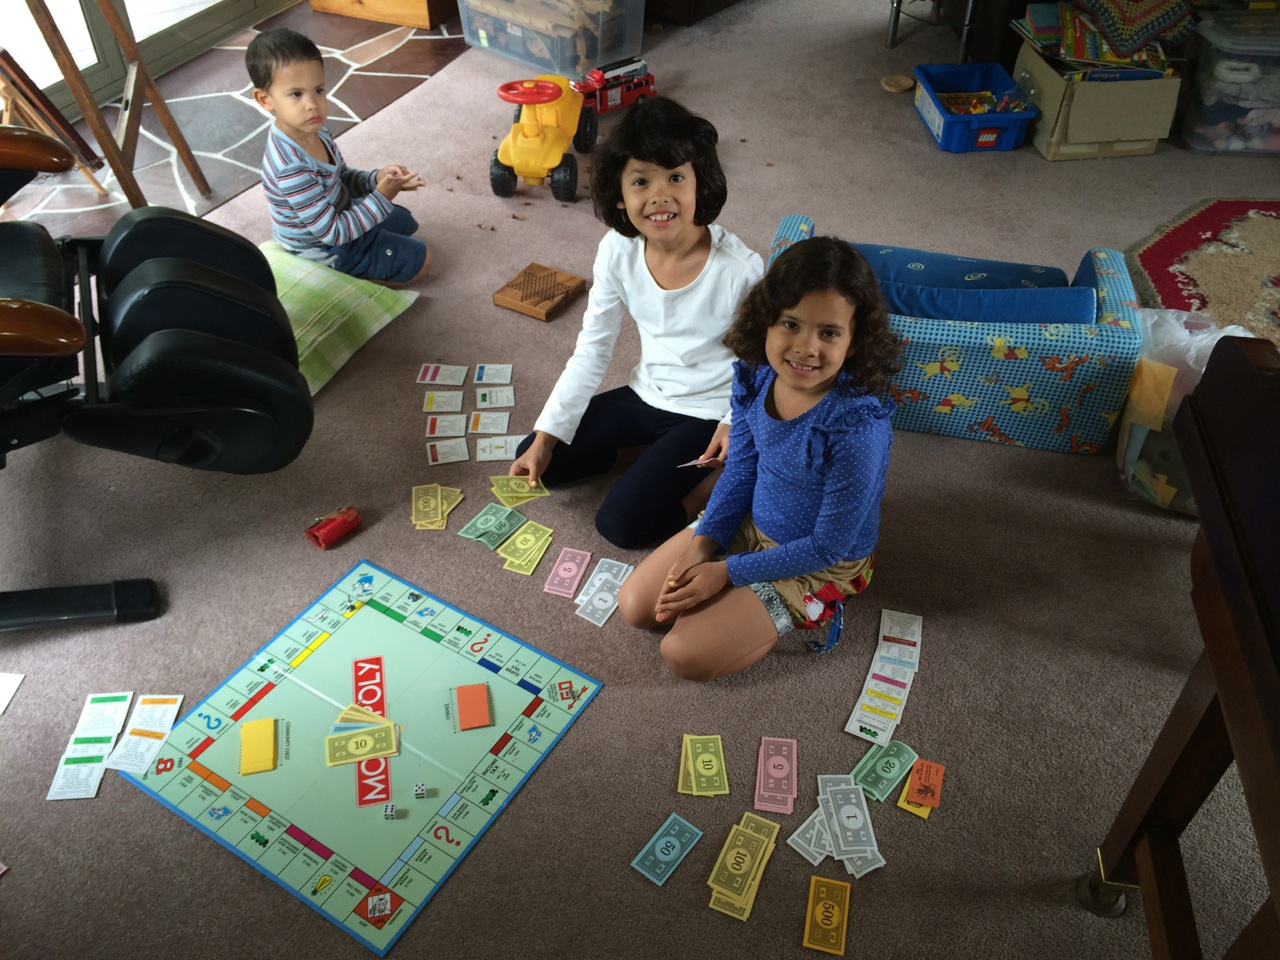 One of the highlights for me of the stay in New Zealand was playing two full length games of Monopoly with my girls. Many memories and stories of my games with my older brother came flooding back and it was a great time for all. Some amazing math lessons were had as well!